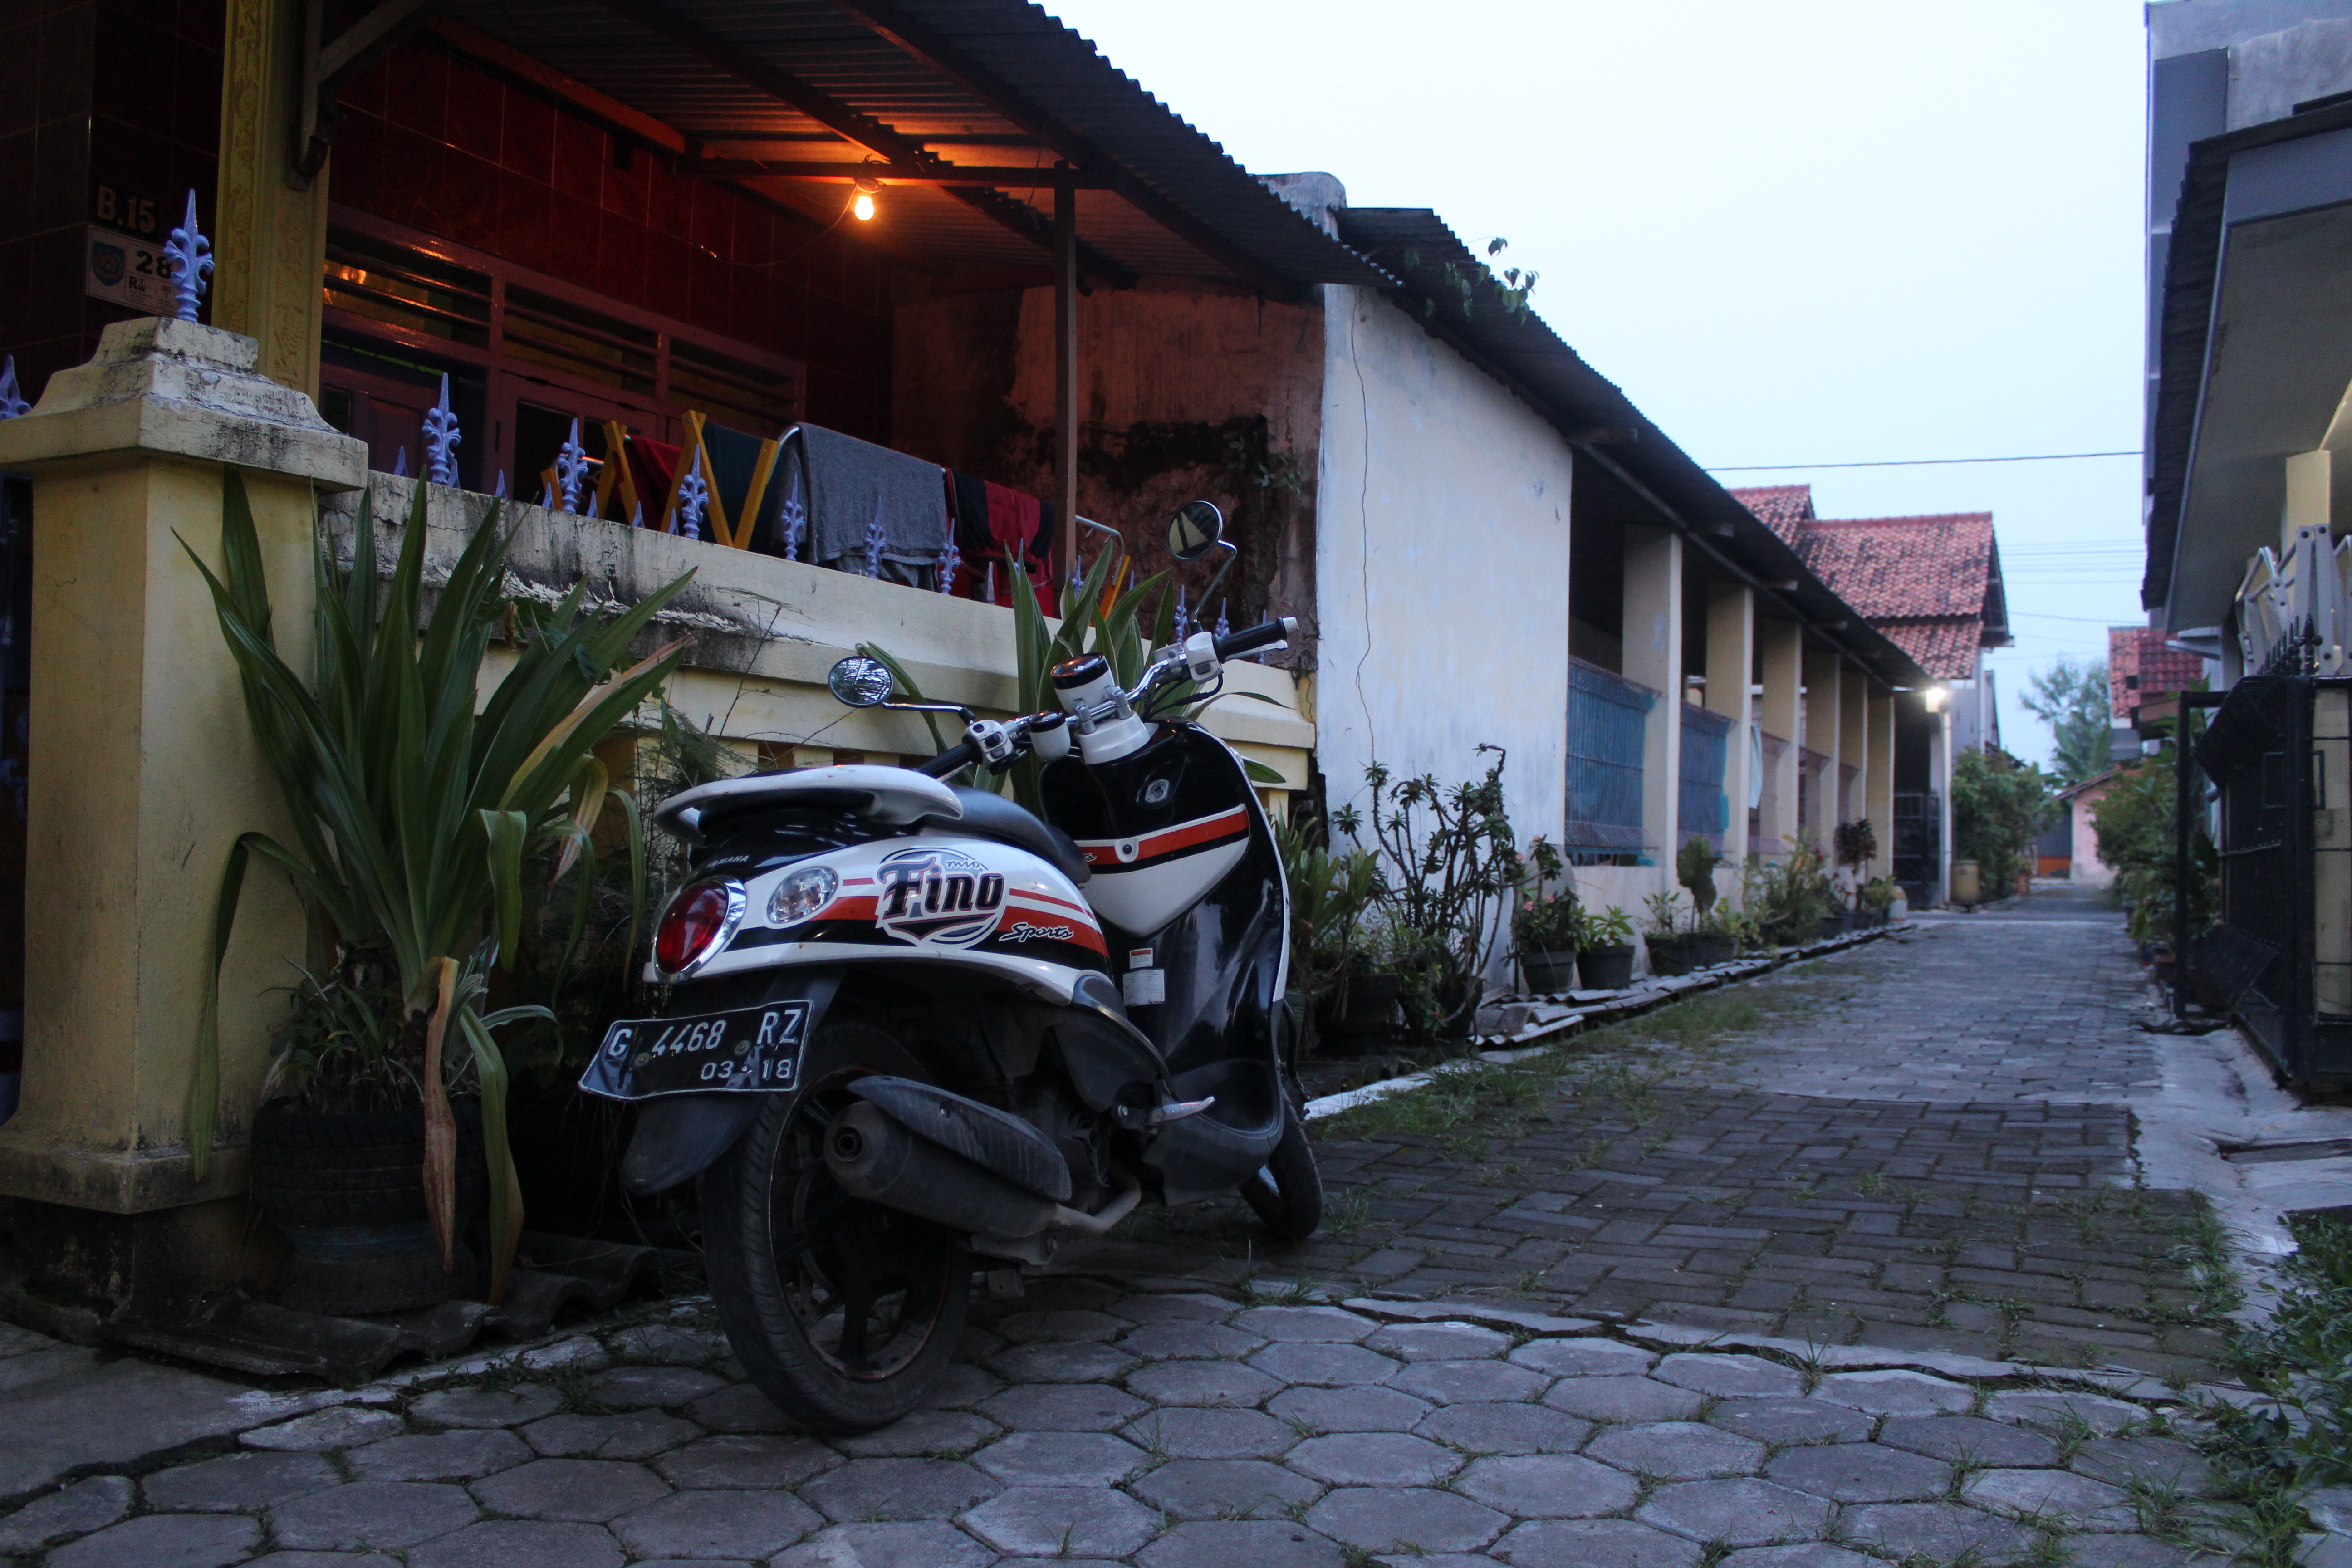 Parked fino motorcycle indonesia photo